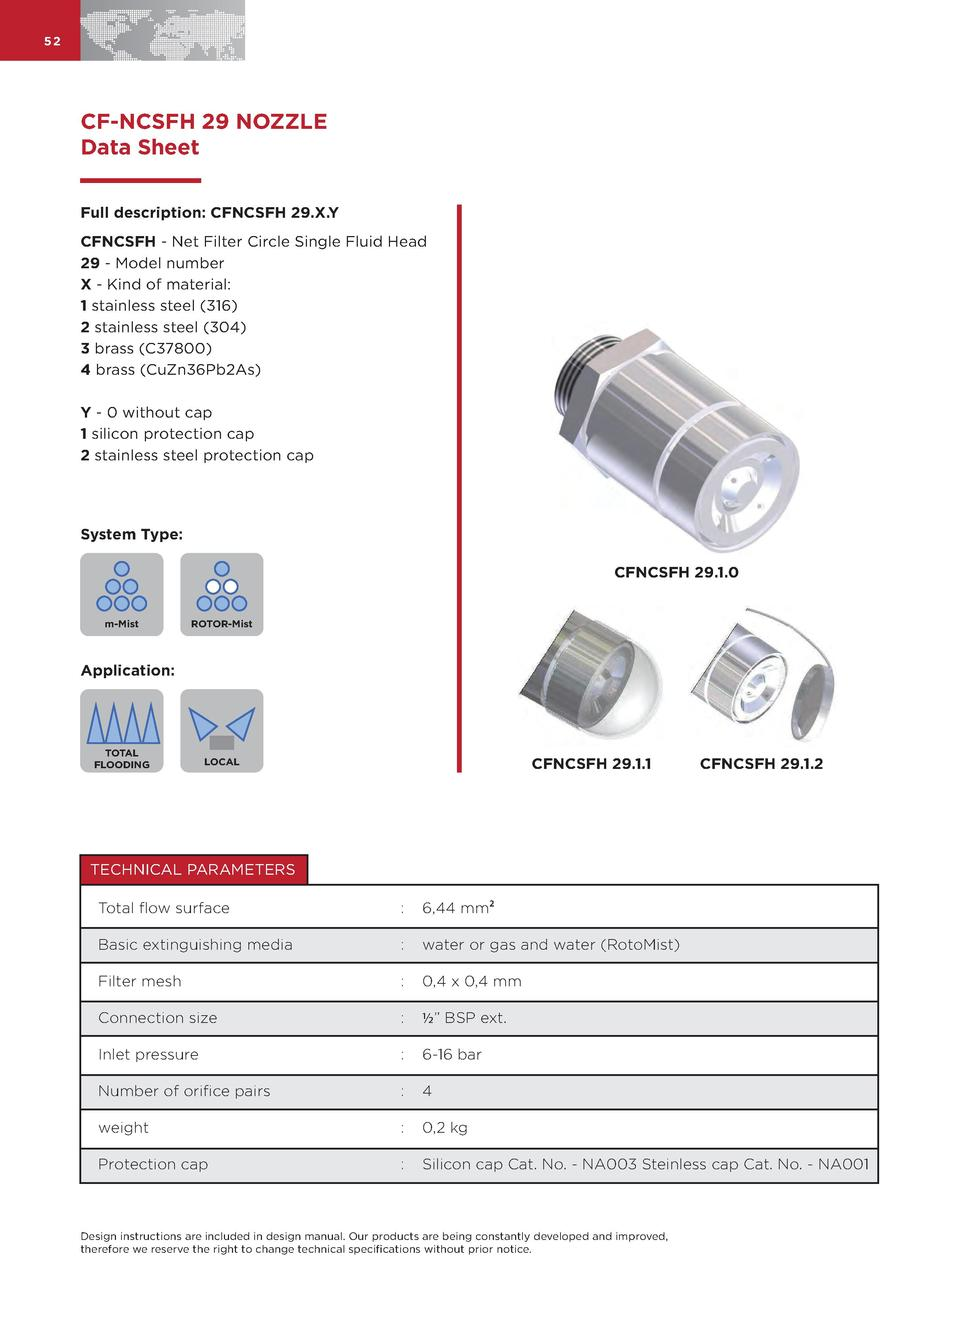 52  CF-NCSFH 29 NOZZLE Data Sheet Full description  CFNCSFH 29.X.Y CFNCSFH - Net Filter Circle Single Fluid Head 29 - Mode...